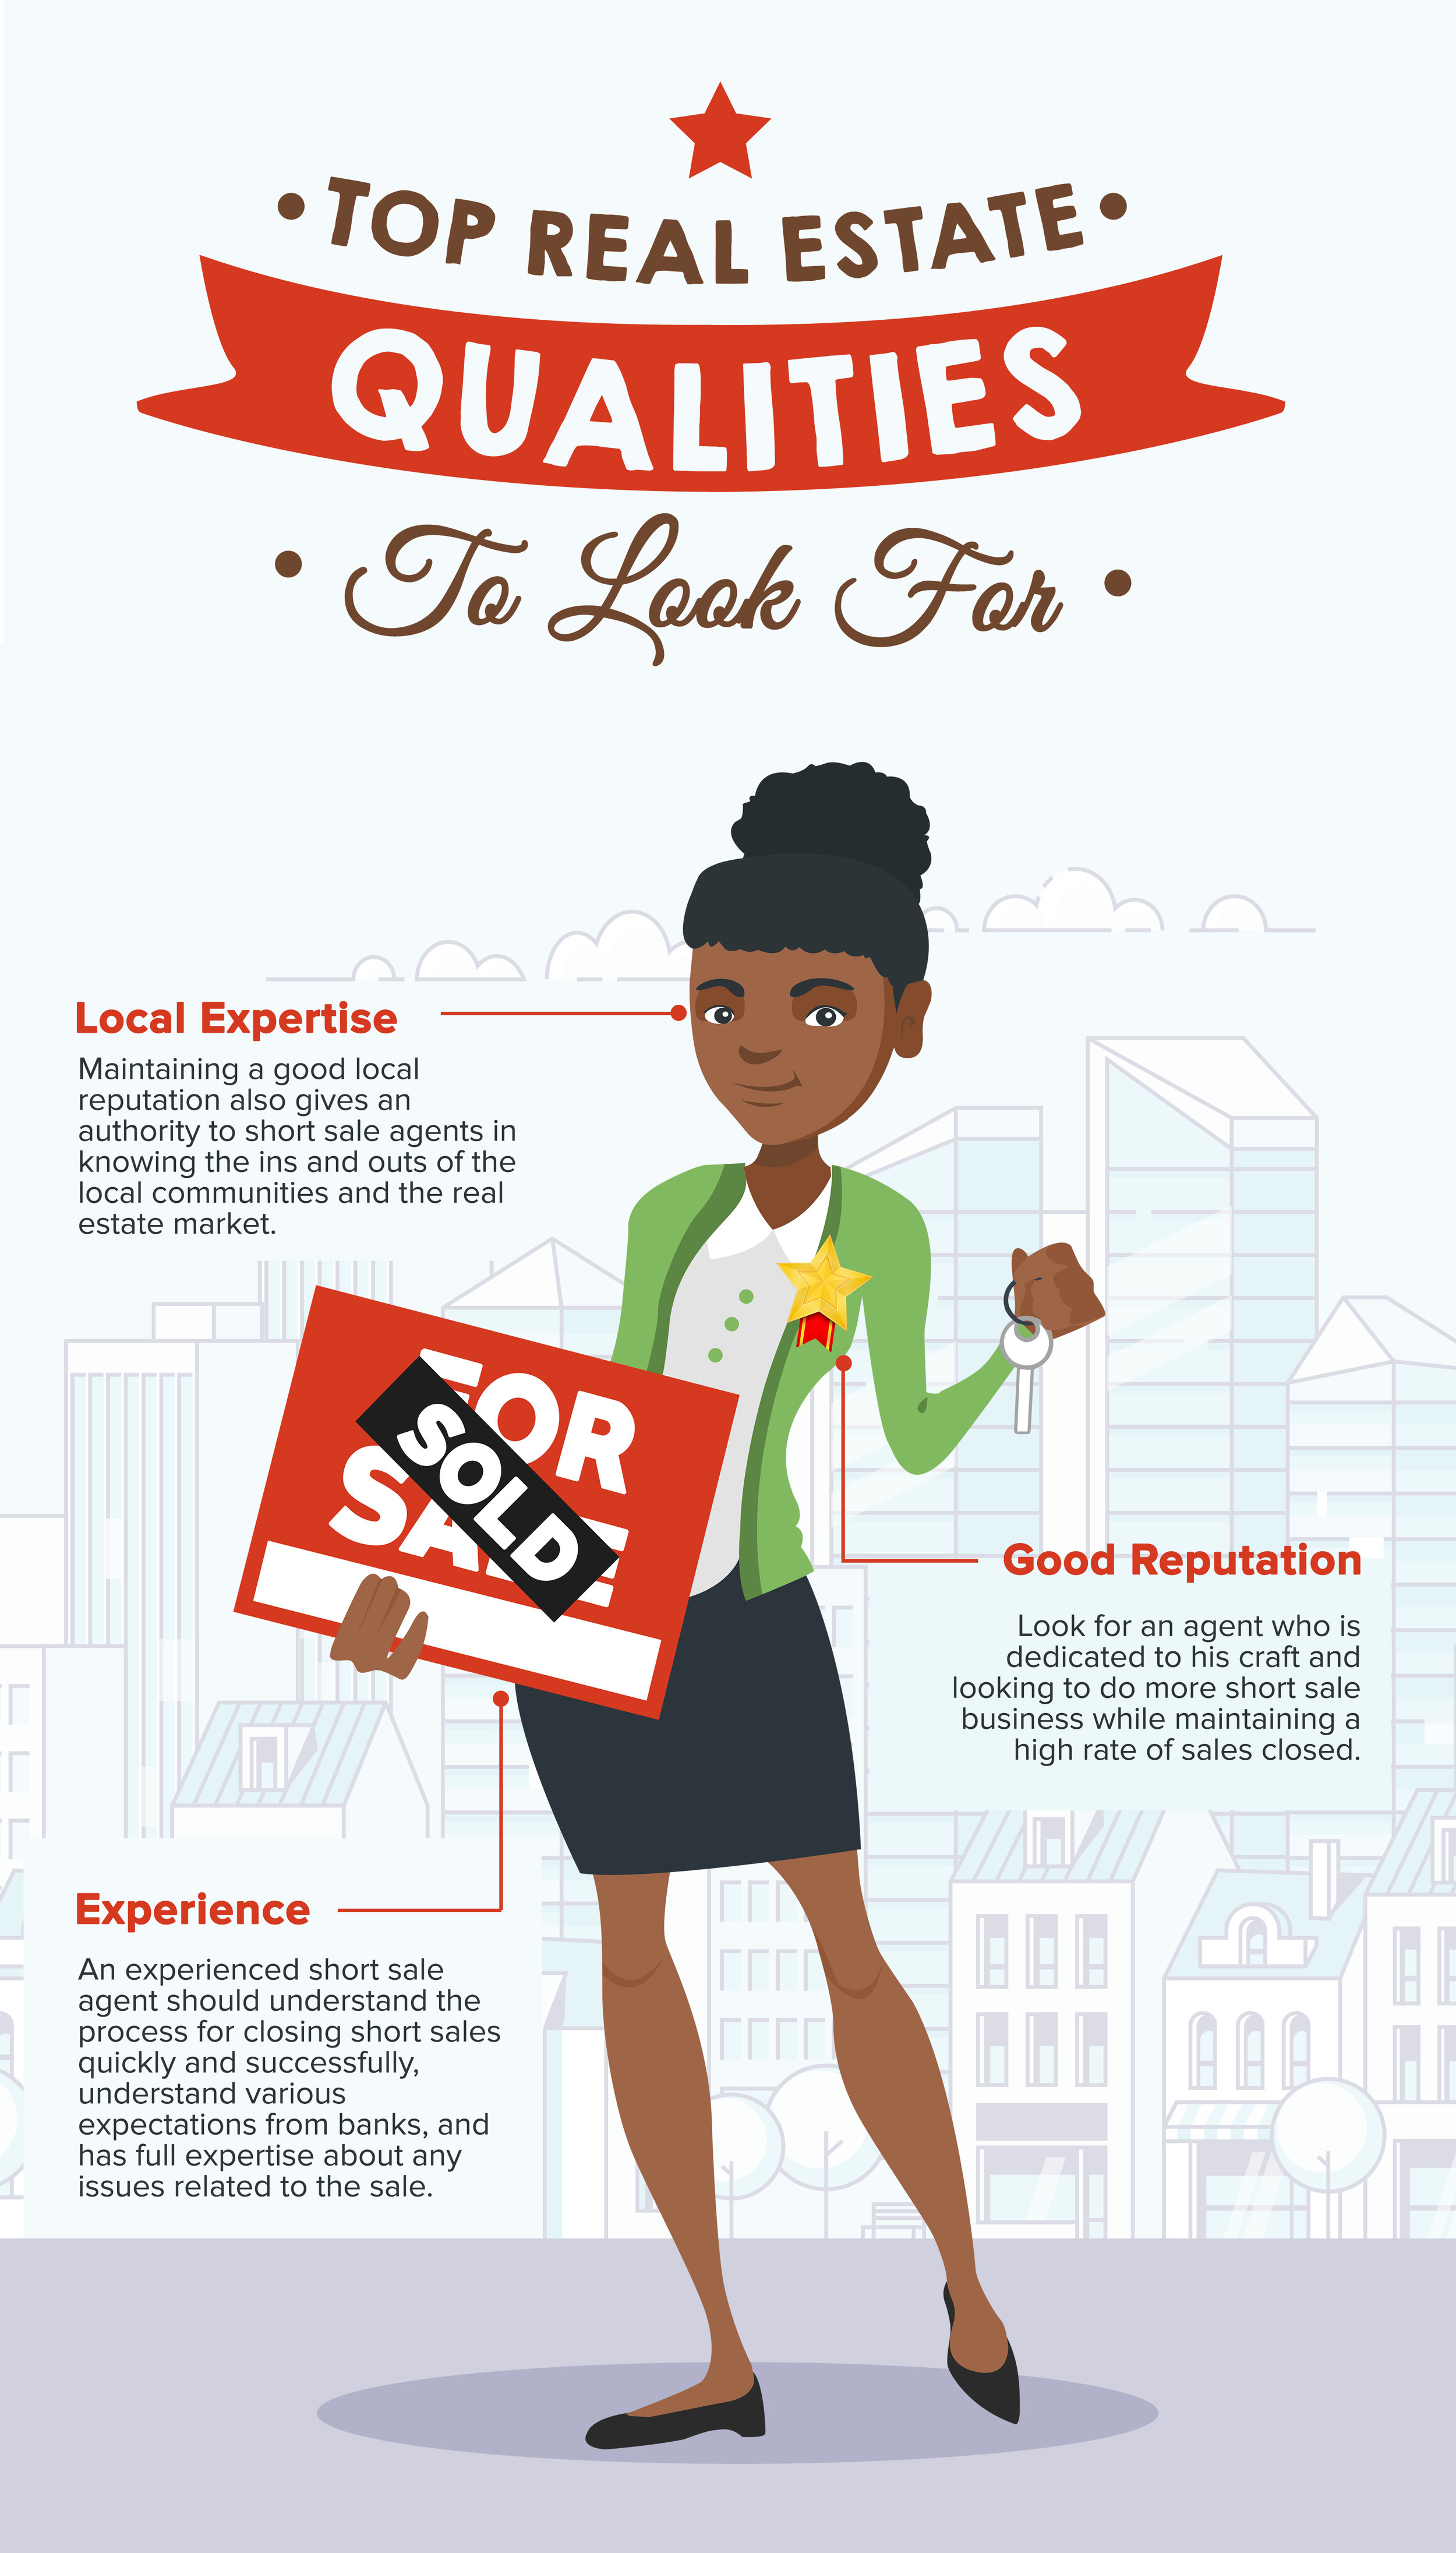 Top Real Estate Qualities To Look For.jpg